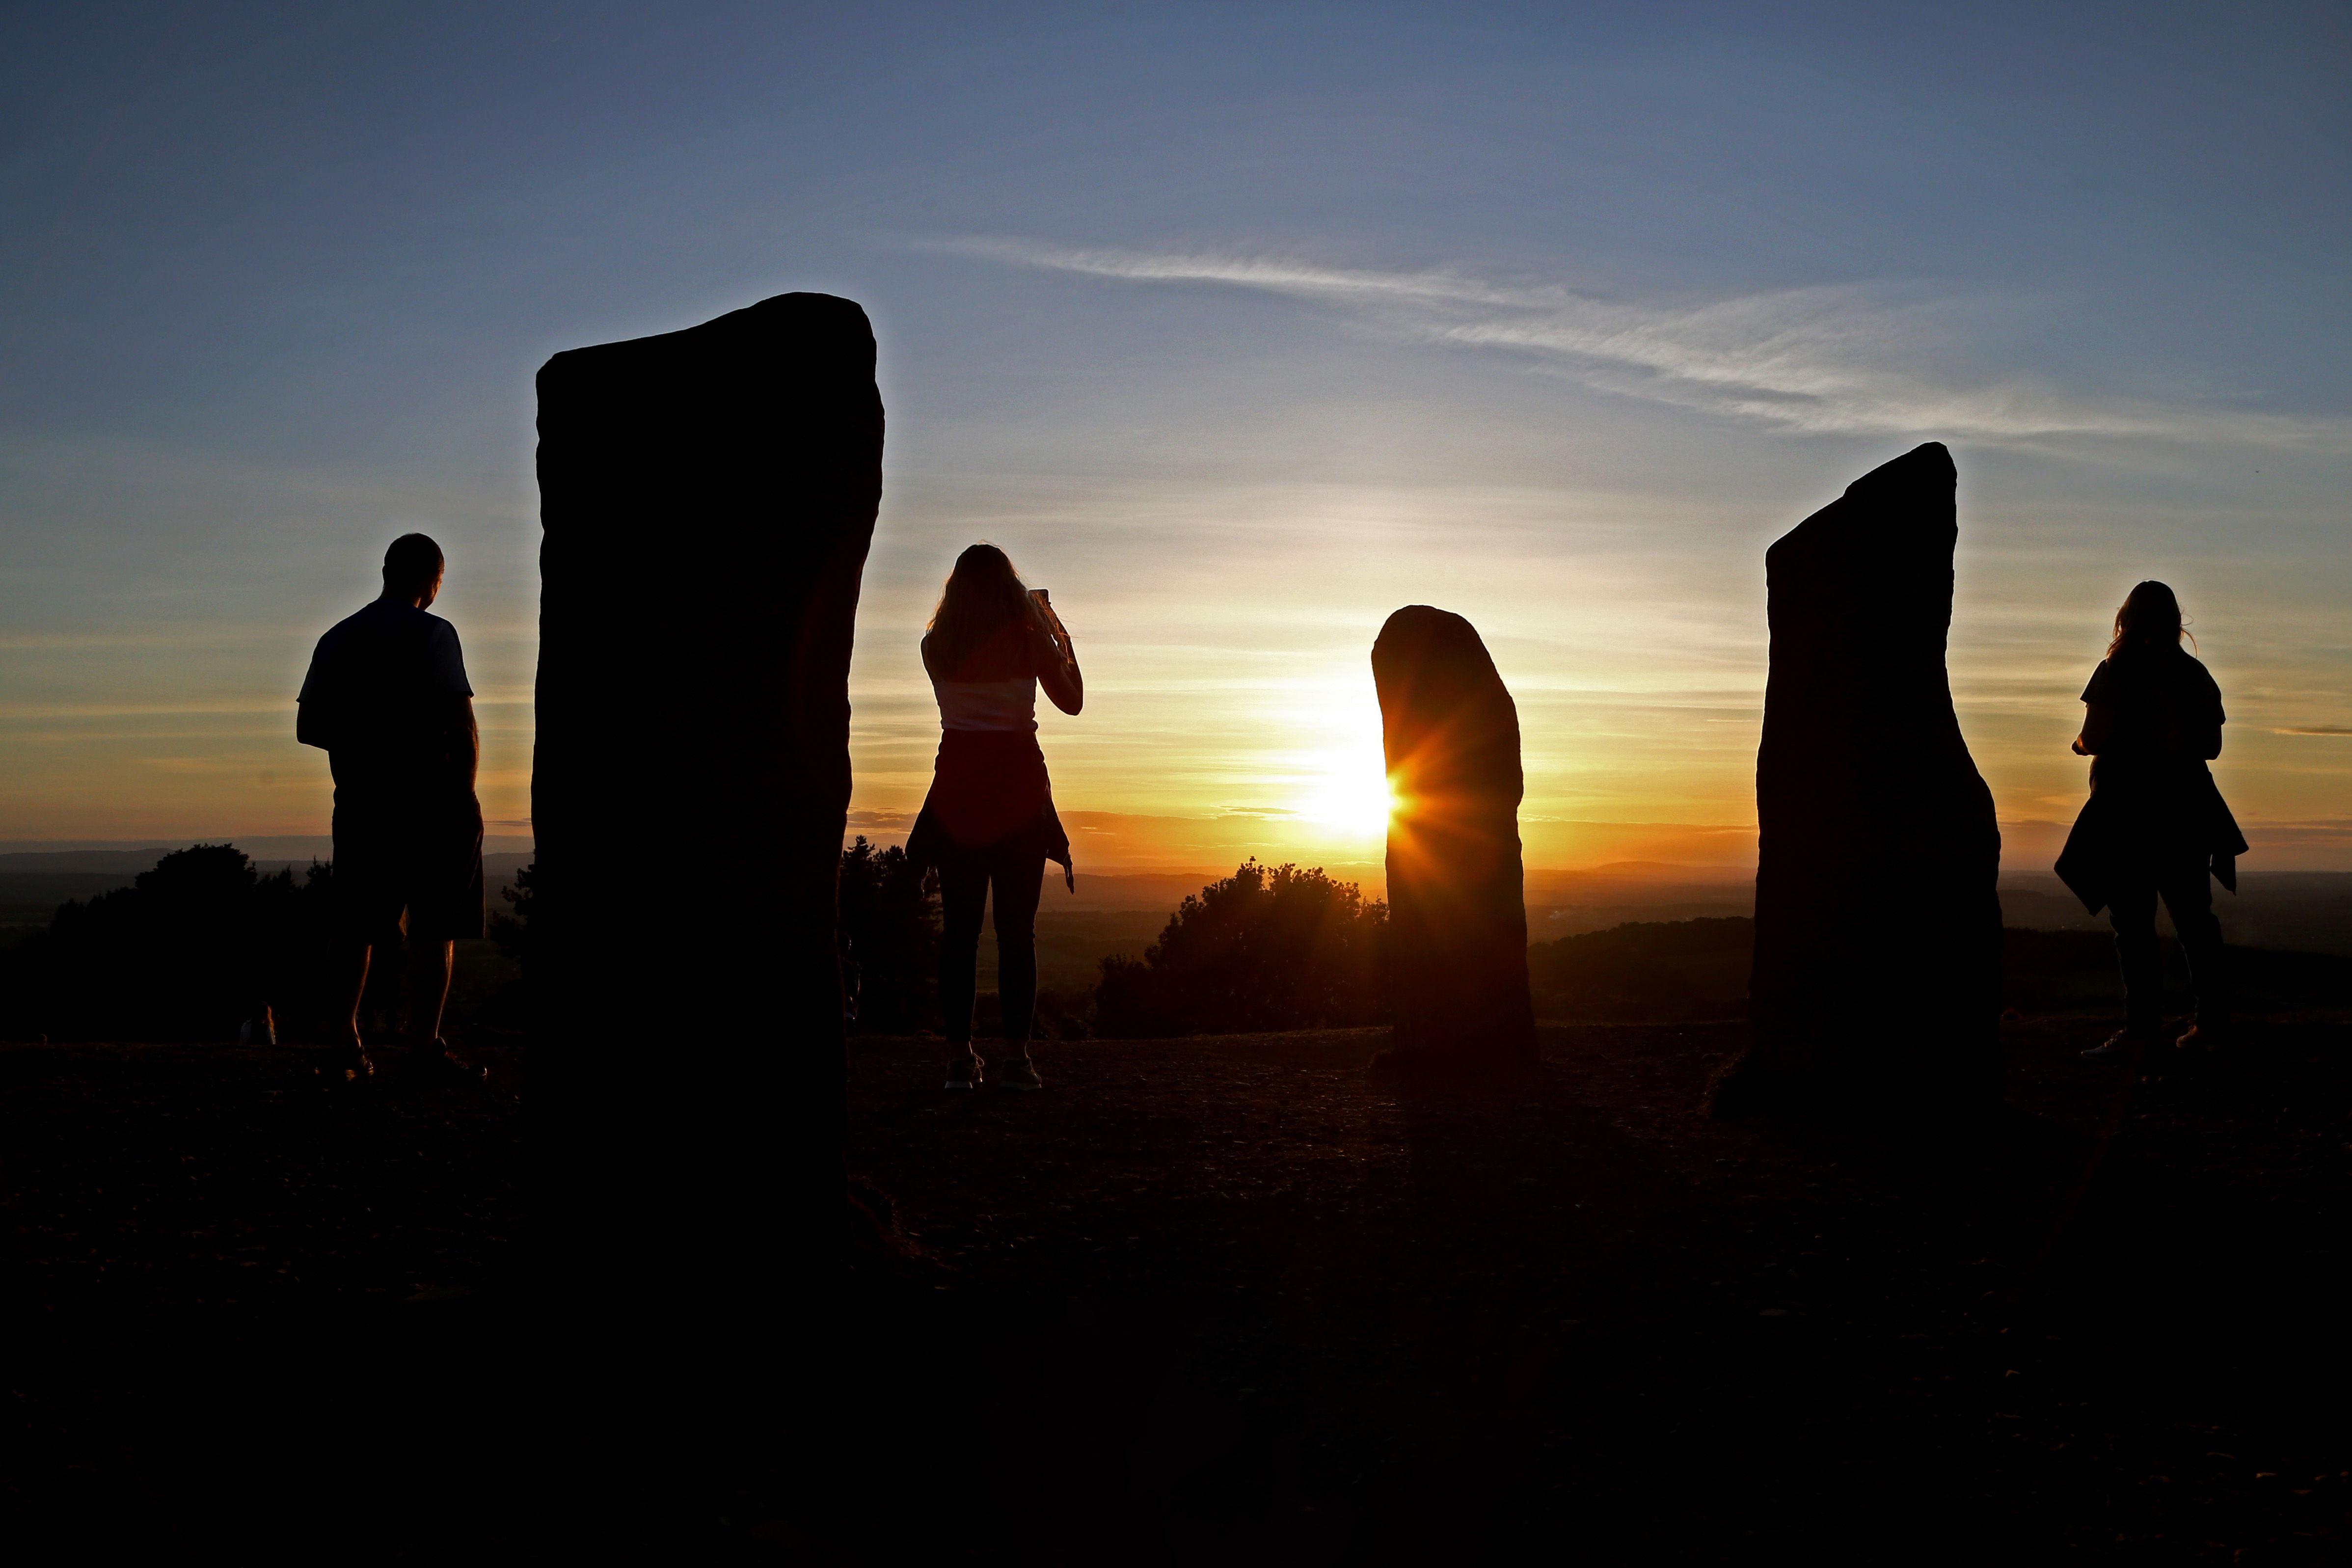 STOURBRIDGE, ENGLAND - MAY 25: A family watch the sunset at Clent Hills on May 25, 2020 near Stourbridge, Worcestershire, England. The British government has started easing the lockdown it imposed two months ago to curb the spread of Covid-19, abandoning its 'stay at home' slogan in favour of a message to 'be alert', but UK countries have varied in their approaches to relaxing quarantine measures. (Photo by Cameron Smith/Getty Images)